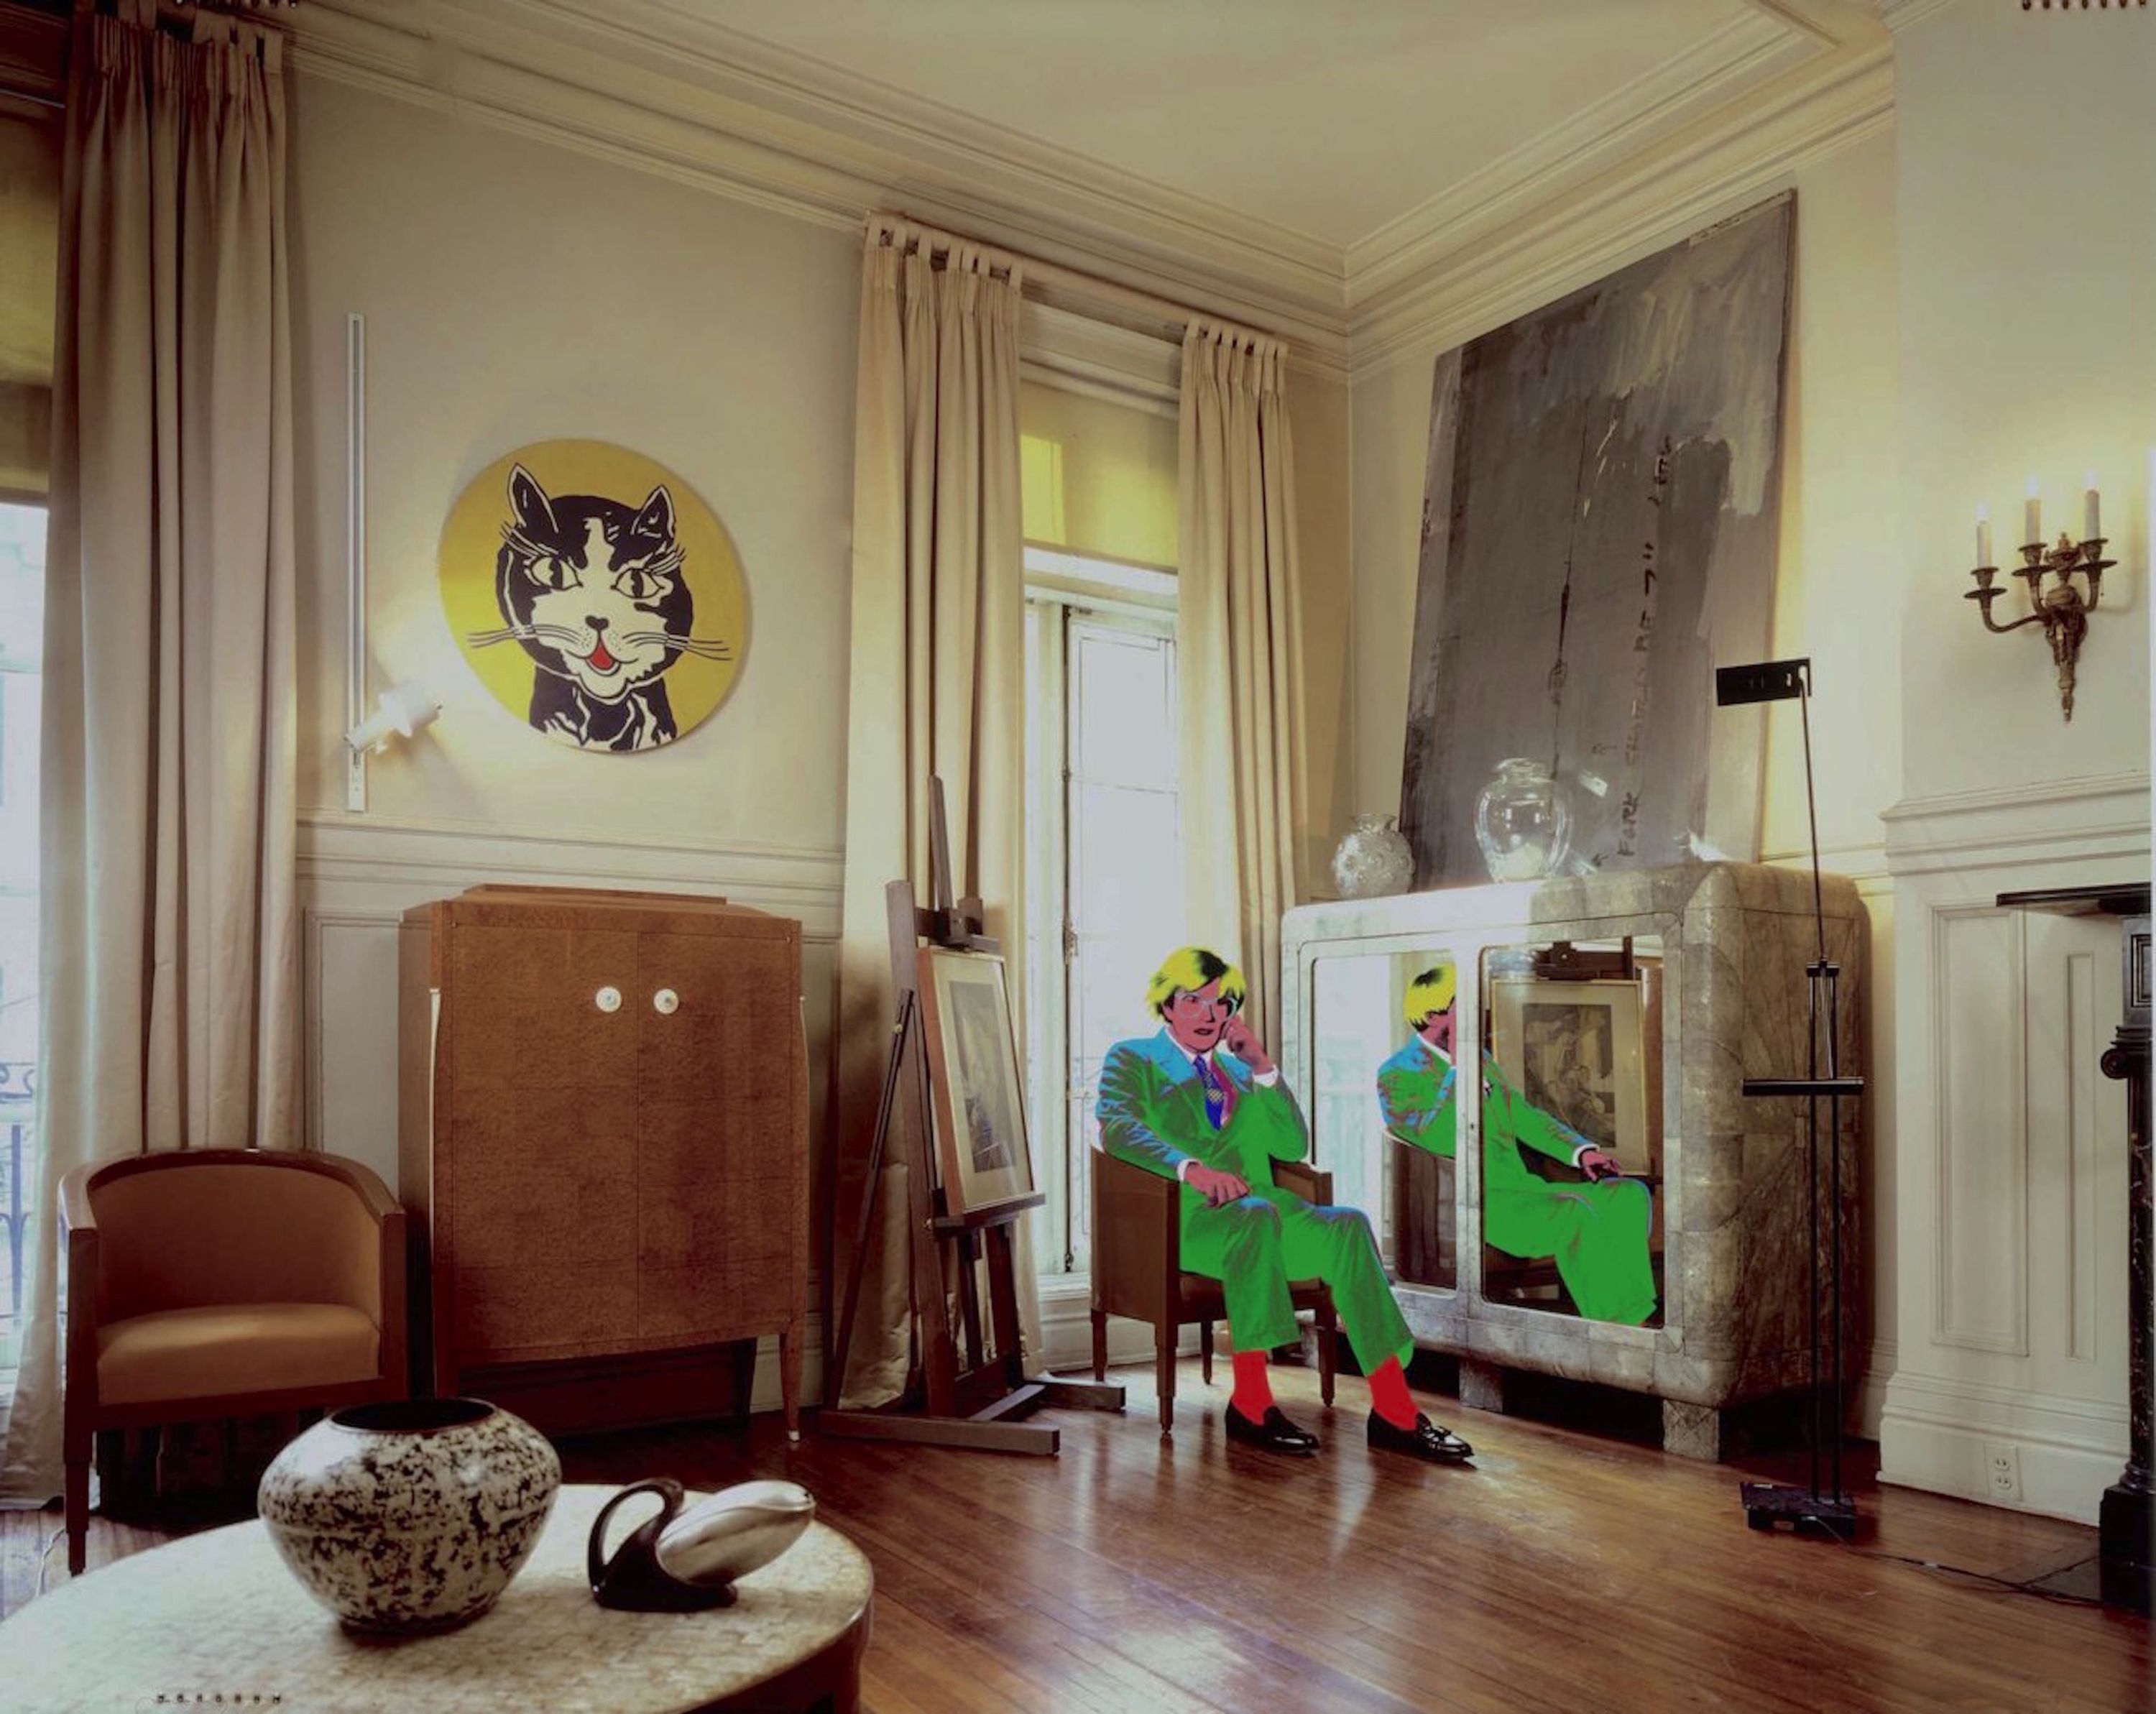 Andy Warhol's Living Room, East 66 Street NYC 1987